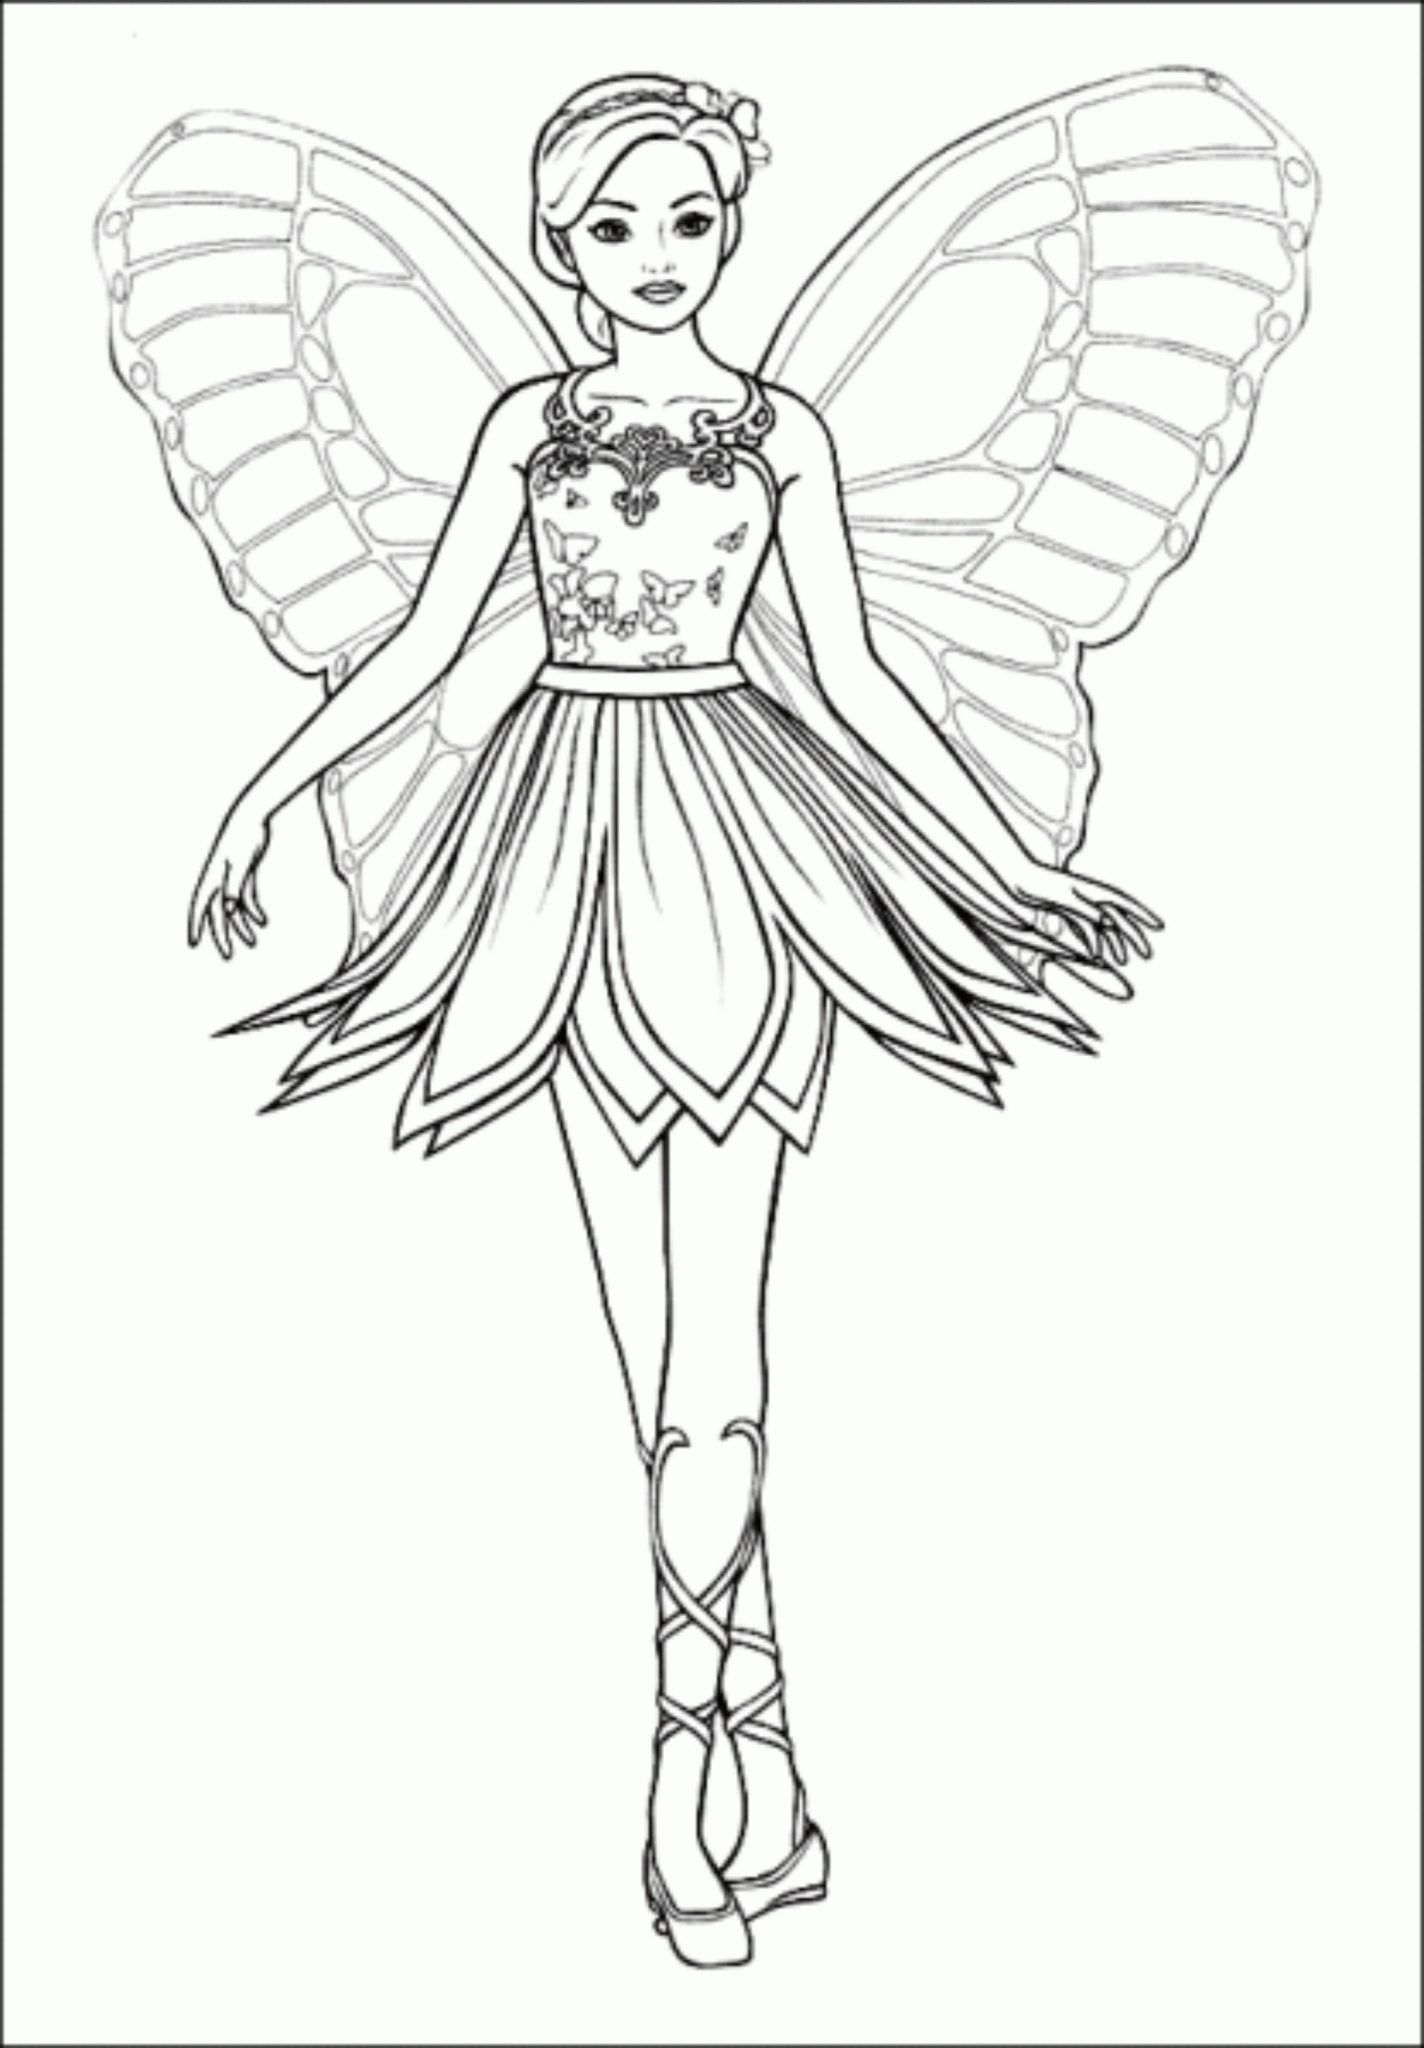 shop related products - Barbie Princess Coloring Pages